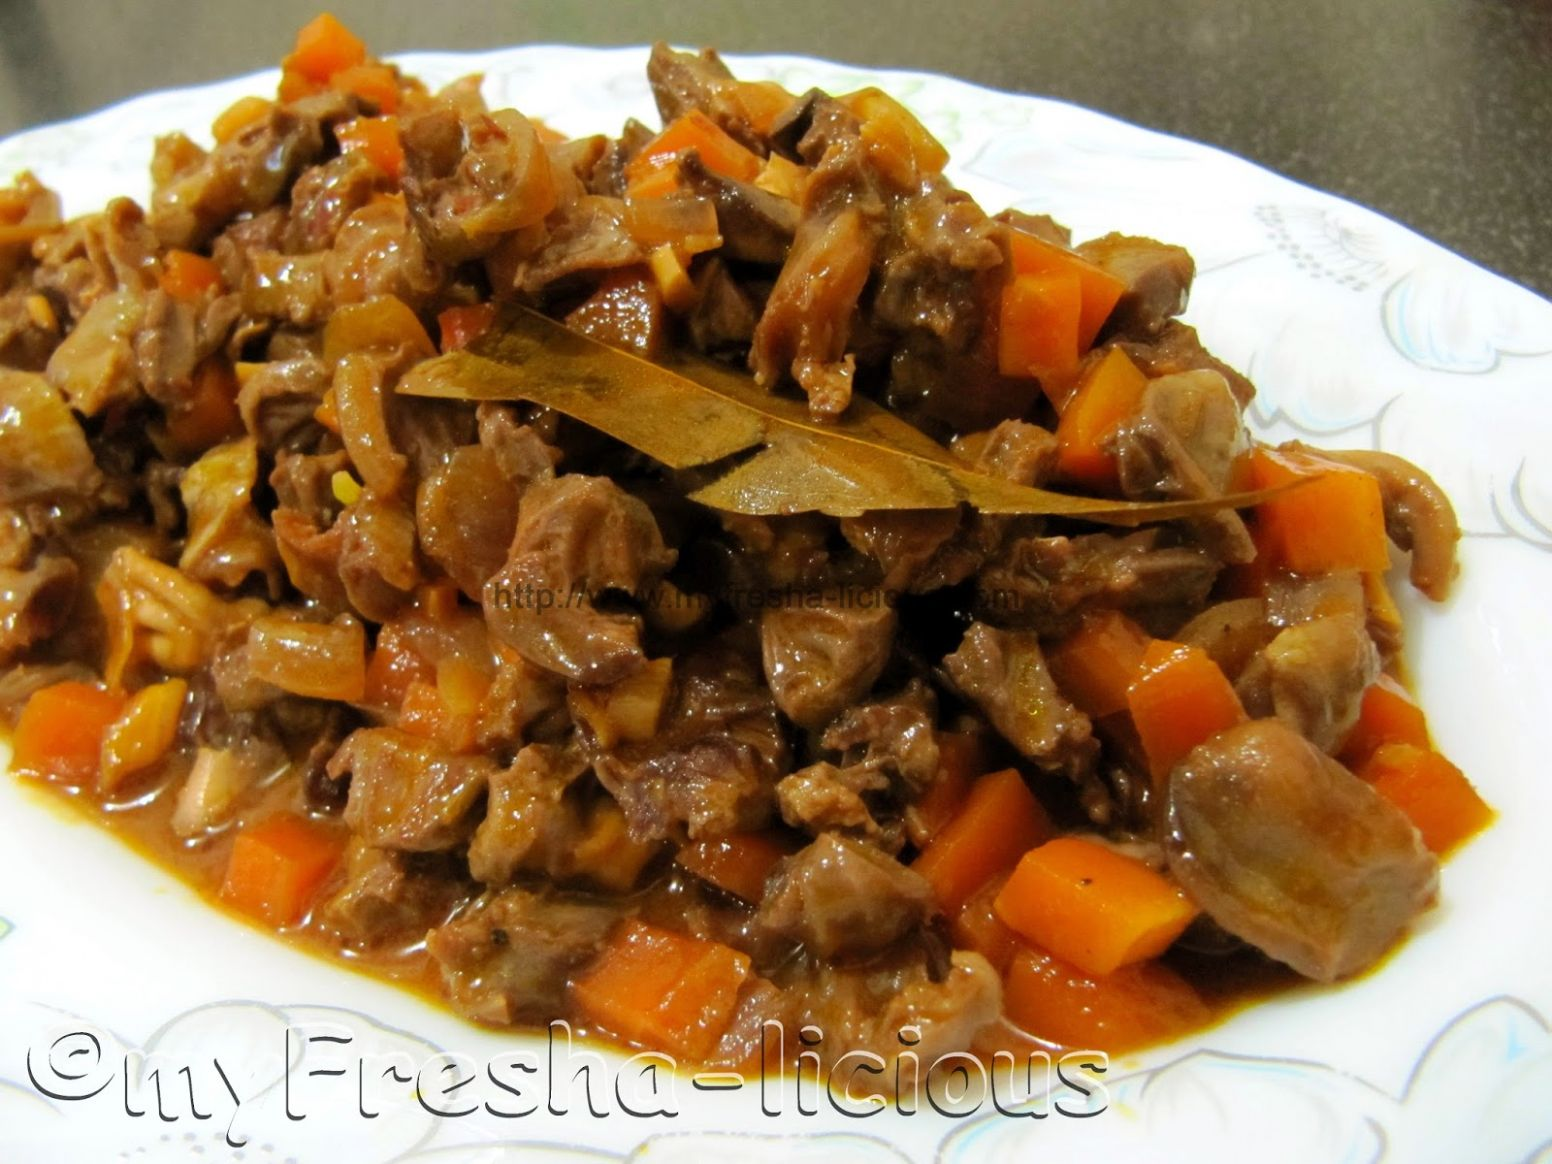 myFresha-licious: Bopis : Chicken Gizzard and Heart - Recipes Chicken Hearts And Gizzards